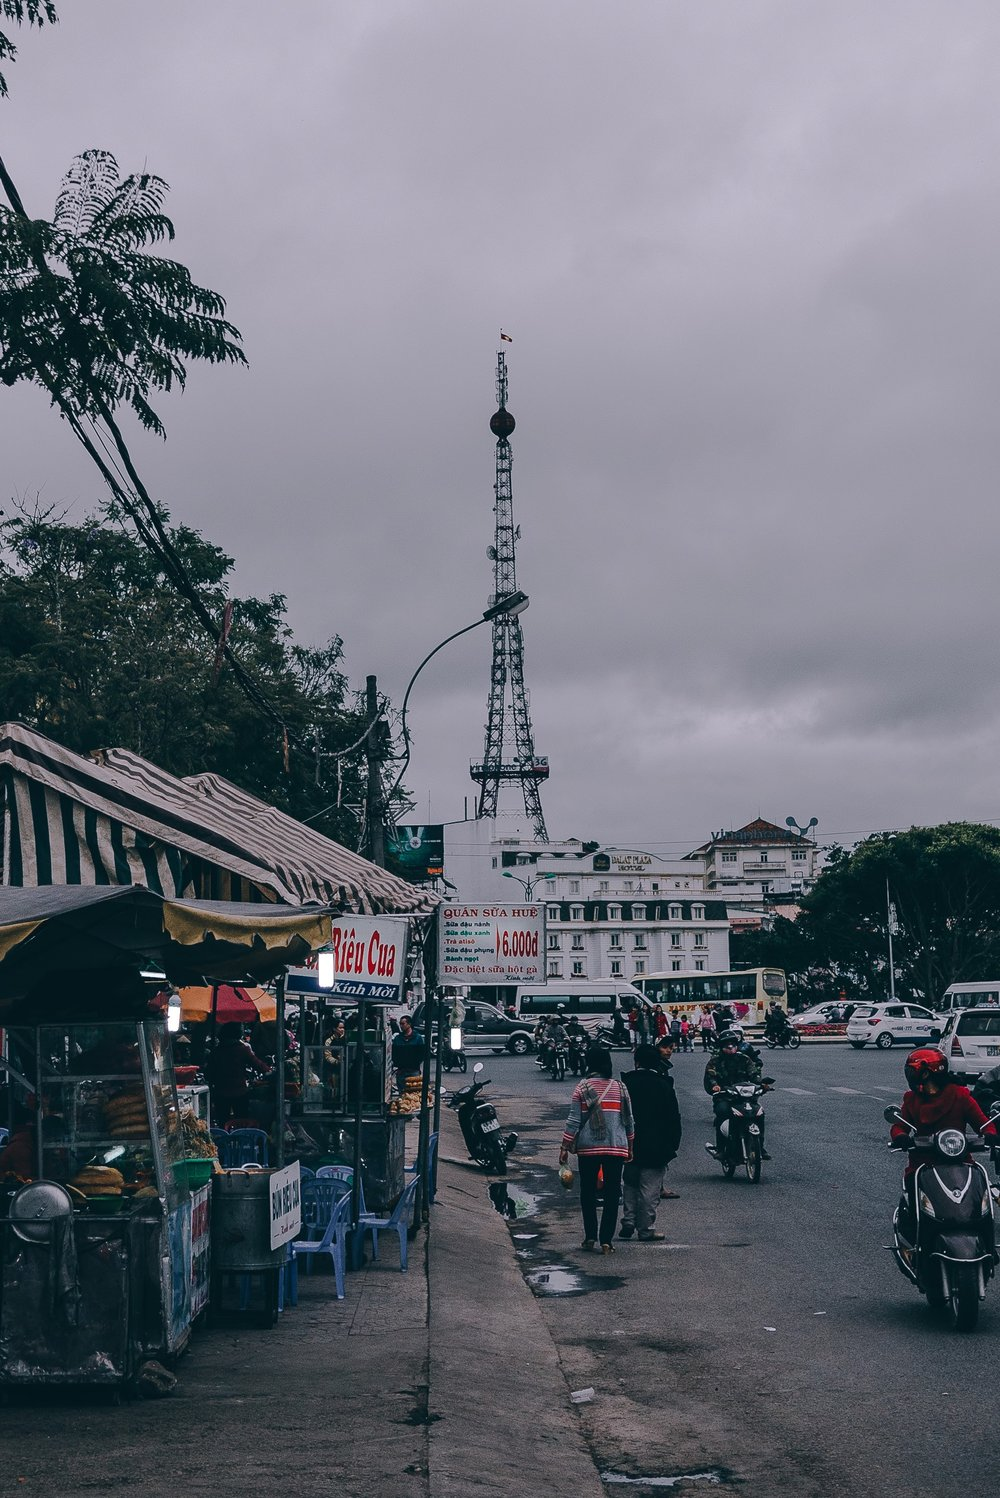 A mini replica of the Eiffel Tower built right smack in the middle of the entire town.